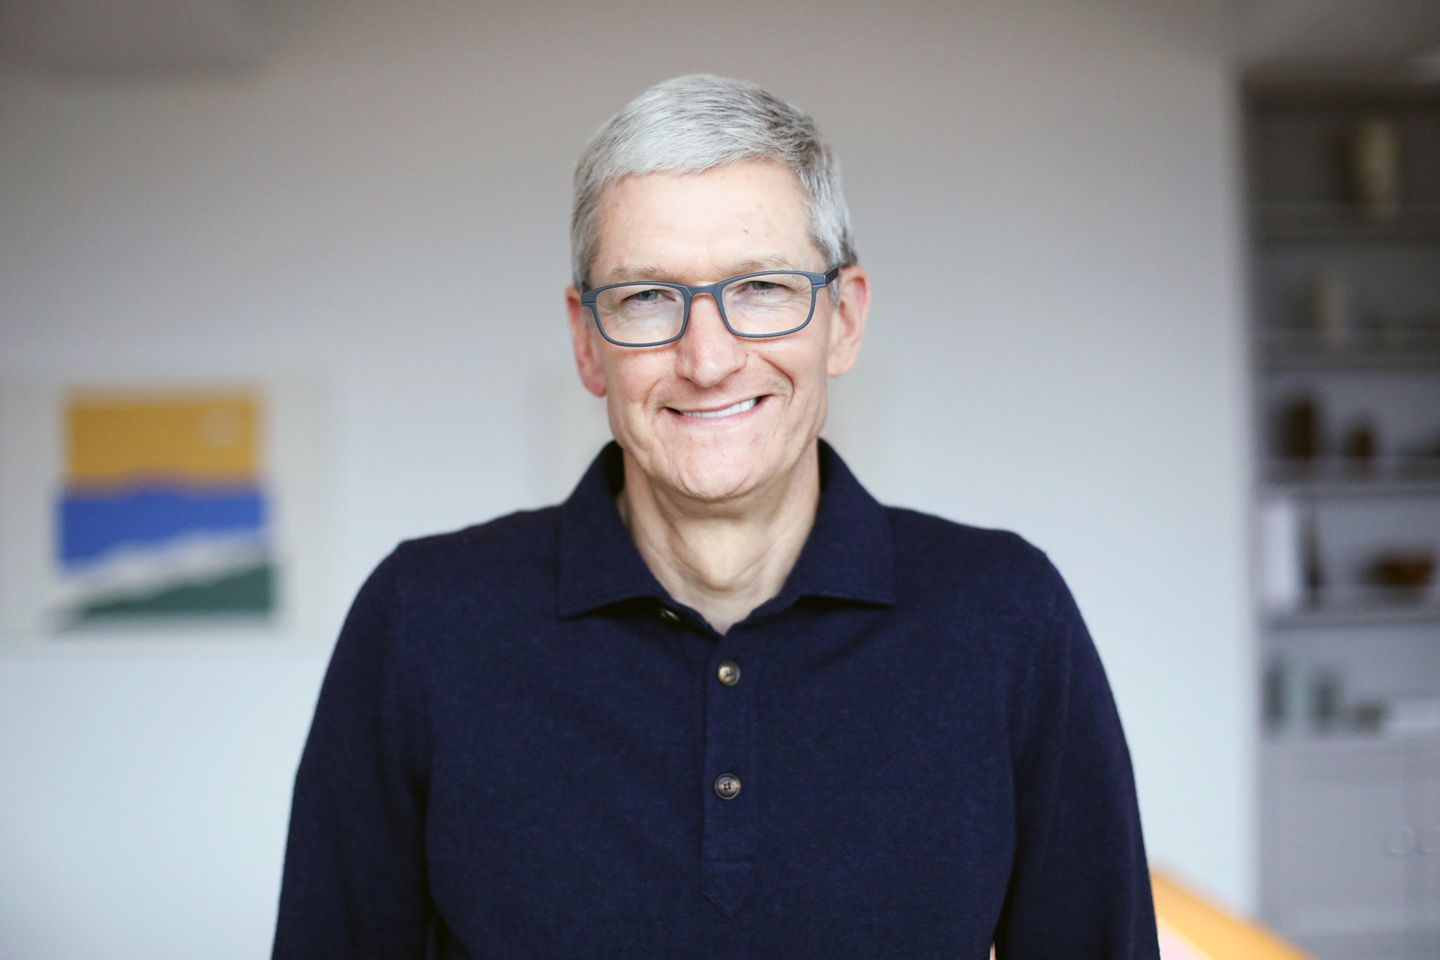 In a New Interview, Tim Cook Says Apple is Focused on Products and People